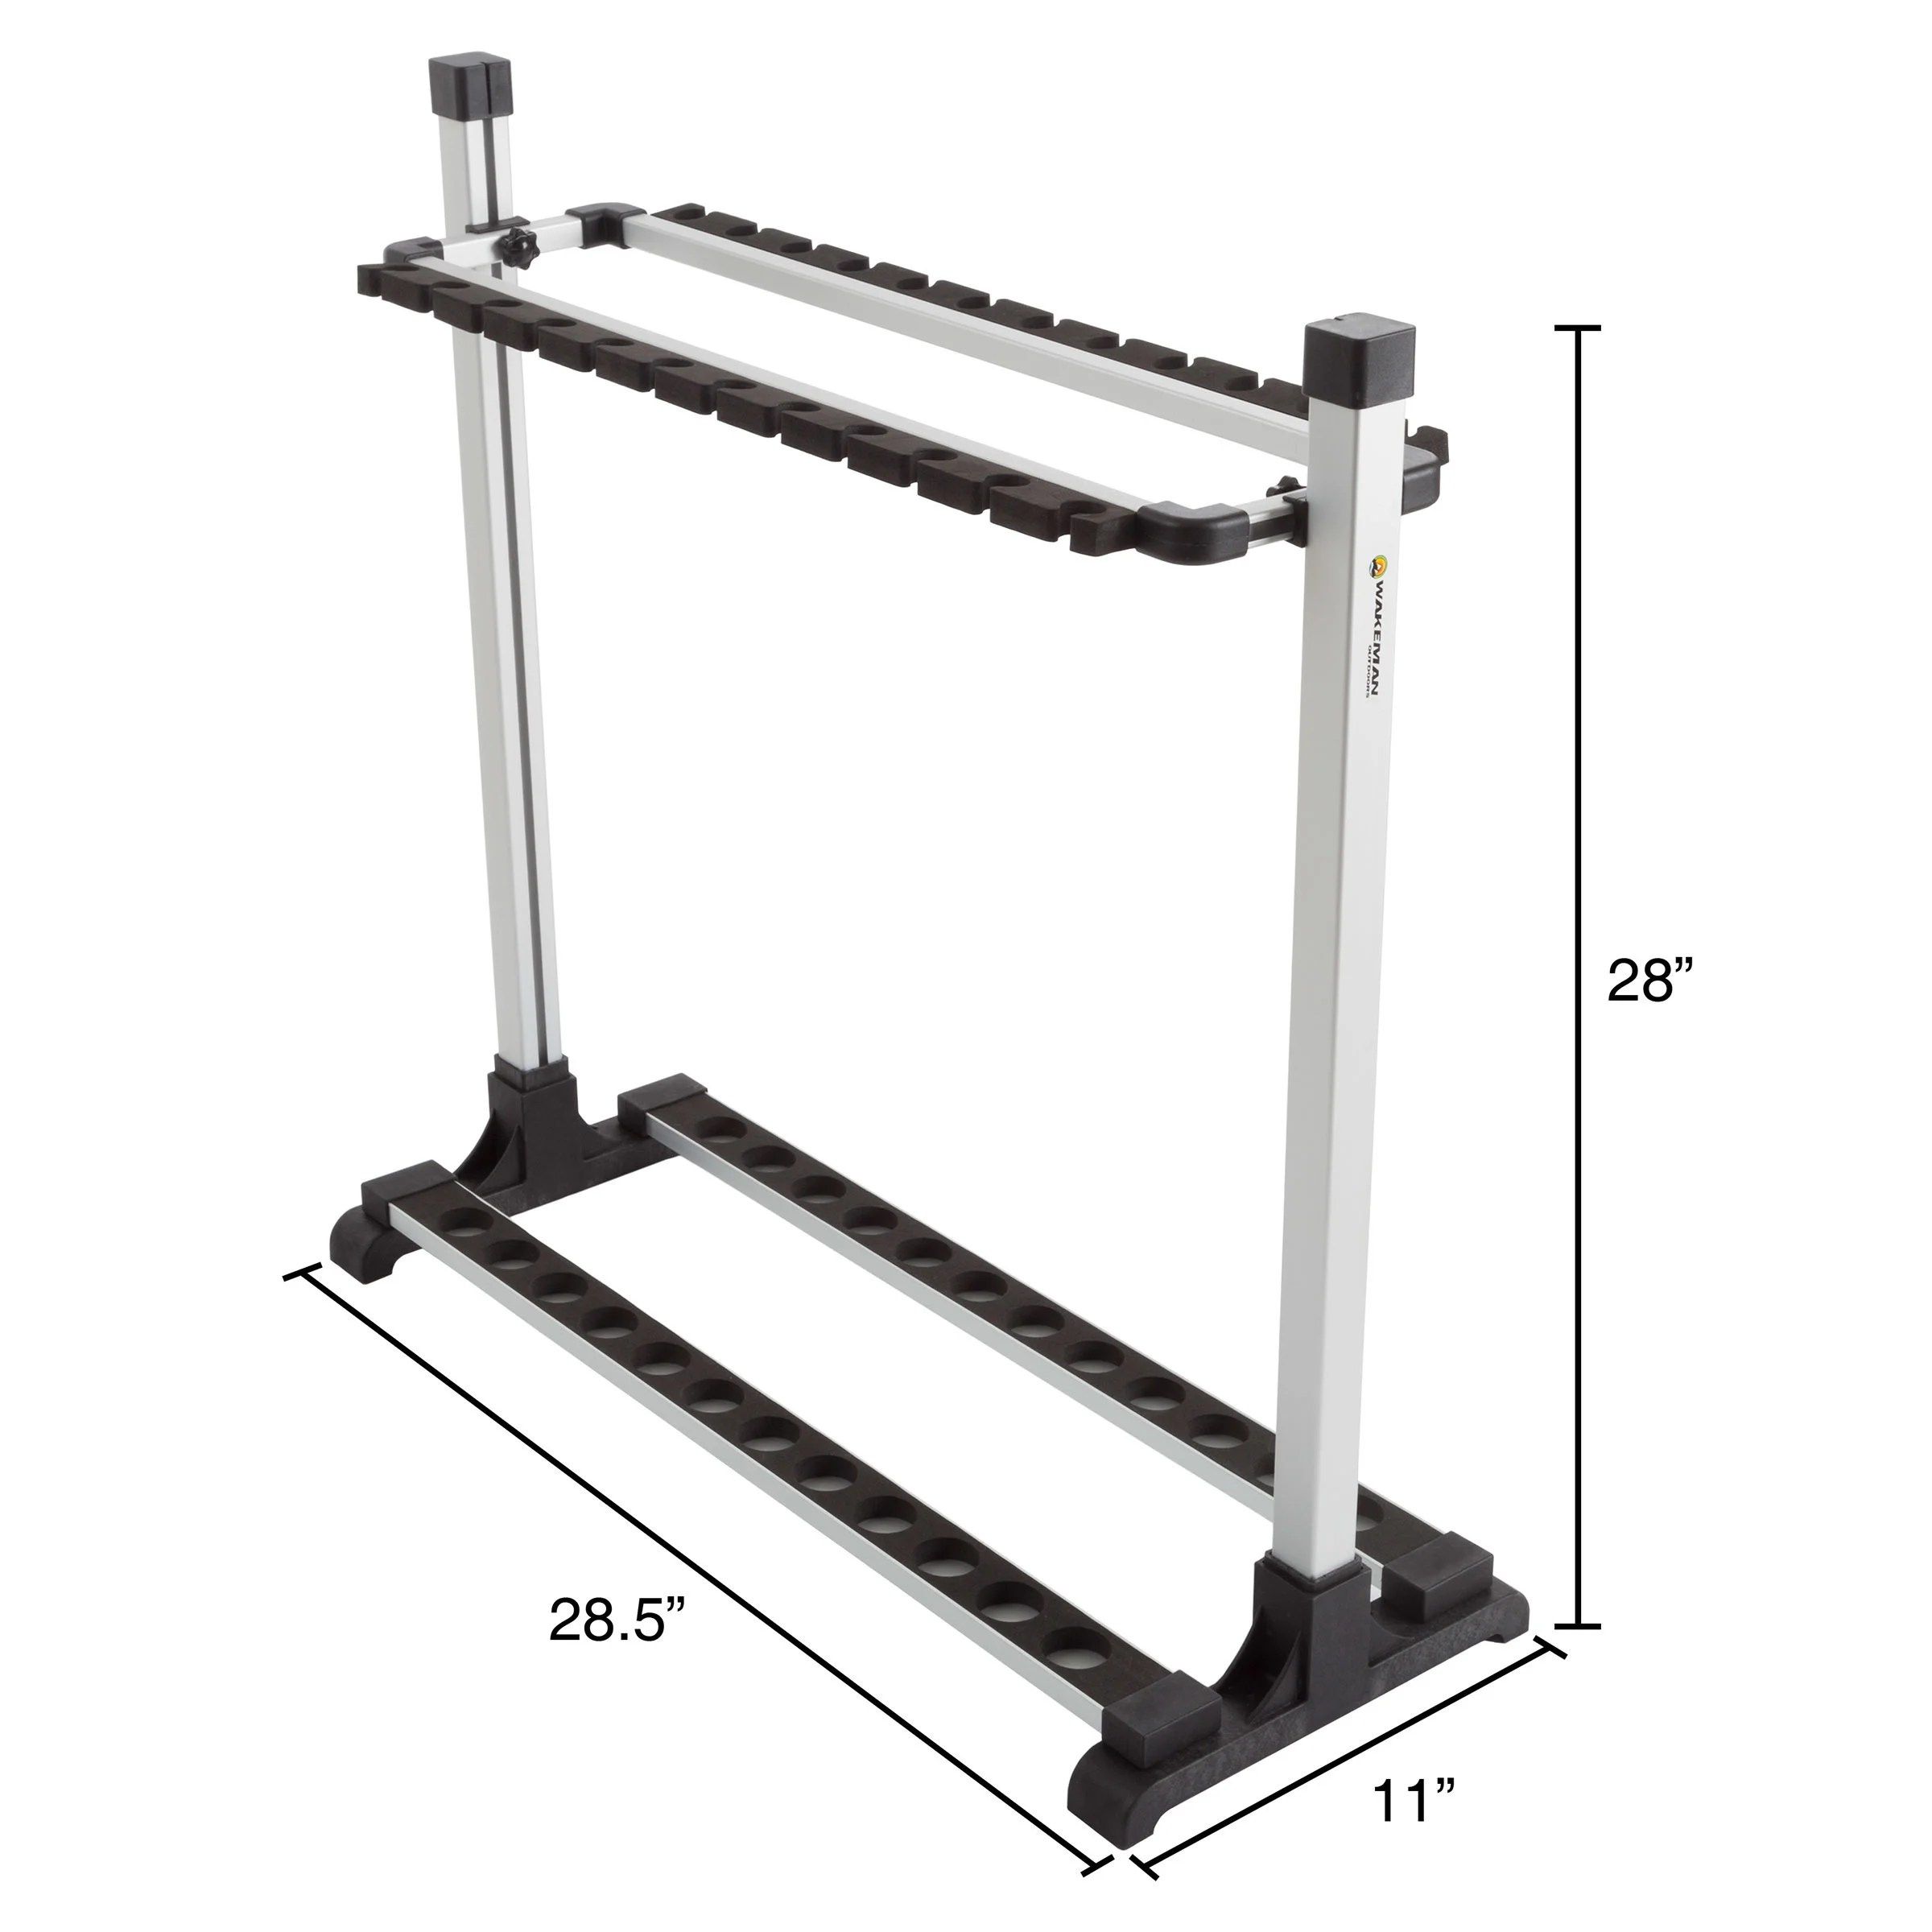 fishing rod rack aluminum freestanding floor storage organizer stand for home or garage fits 24 rods by wakeman outdoors